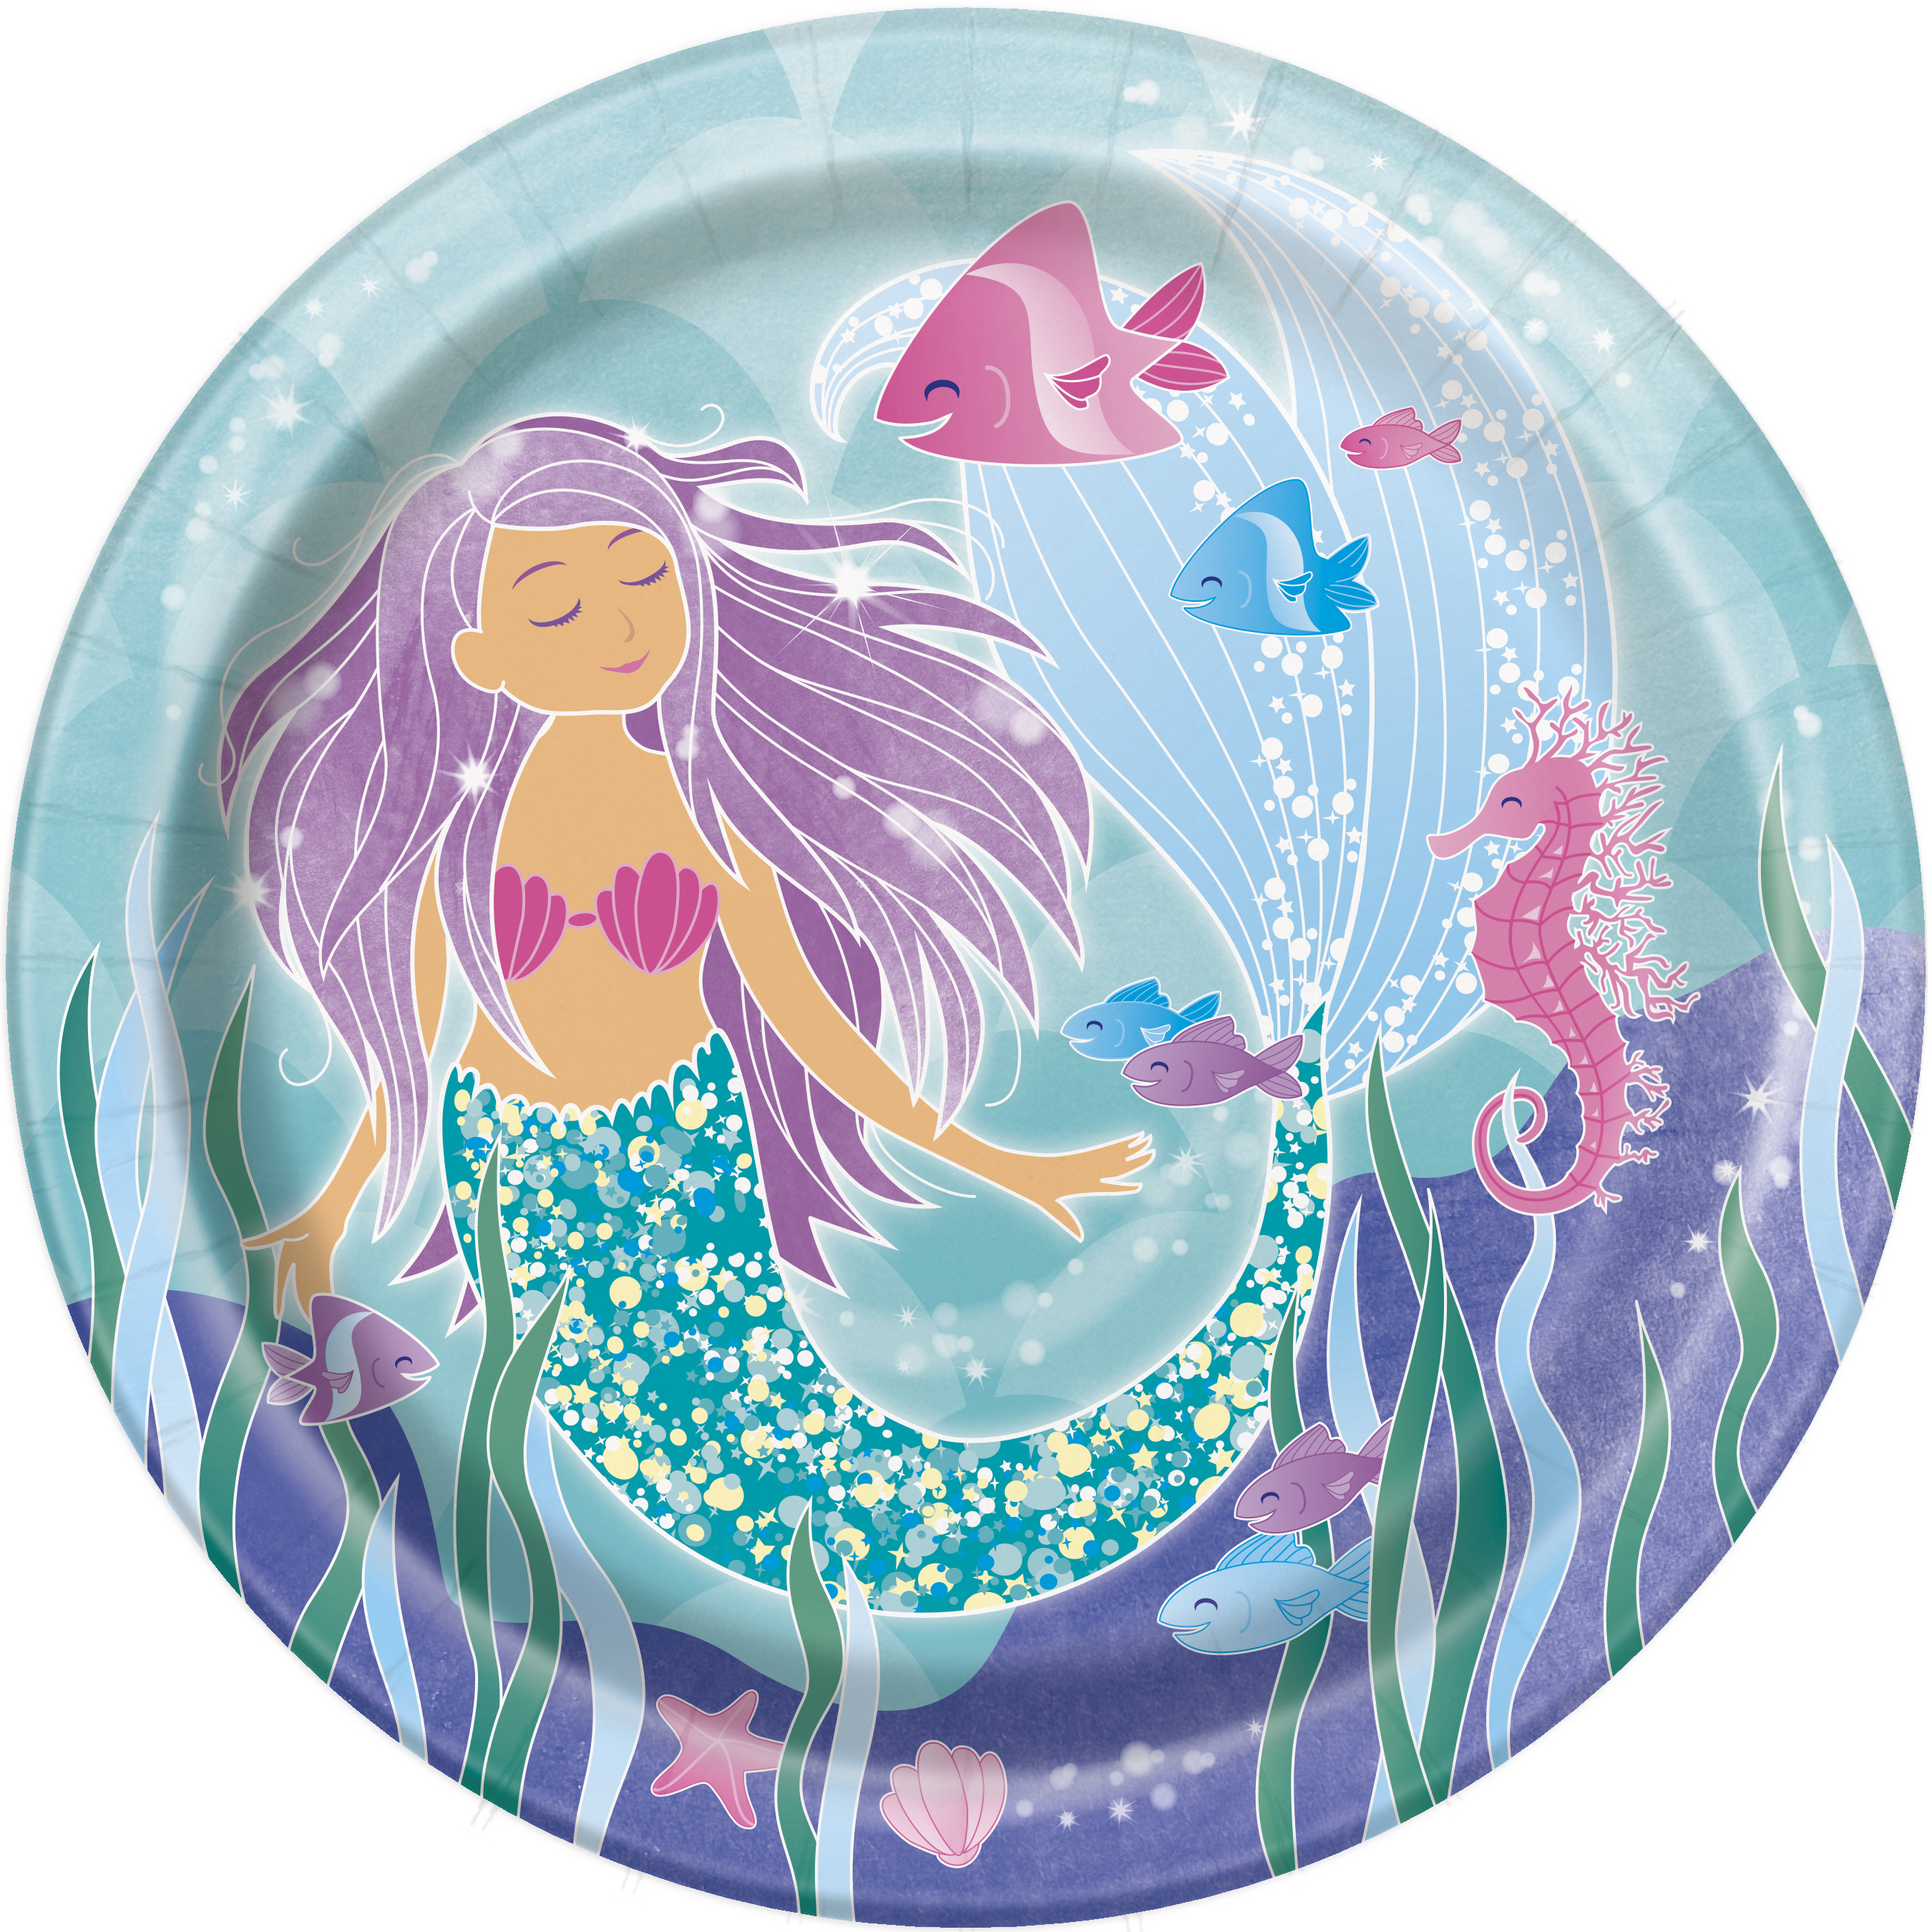 8 x Mermaid Paper Plates Fish Sea Shell Party Tableware Girls Birthday Party  sc 1 st  eBay & 8 x Mermaid Paper Plates Fish Sea Shell Party Tableware Girls ...